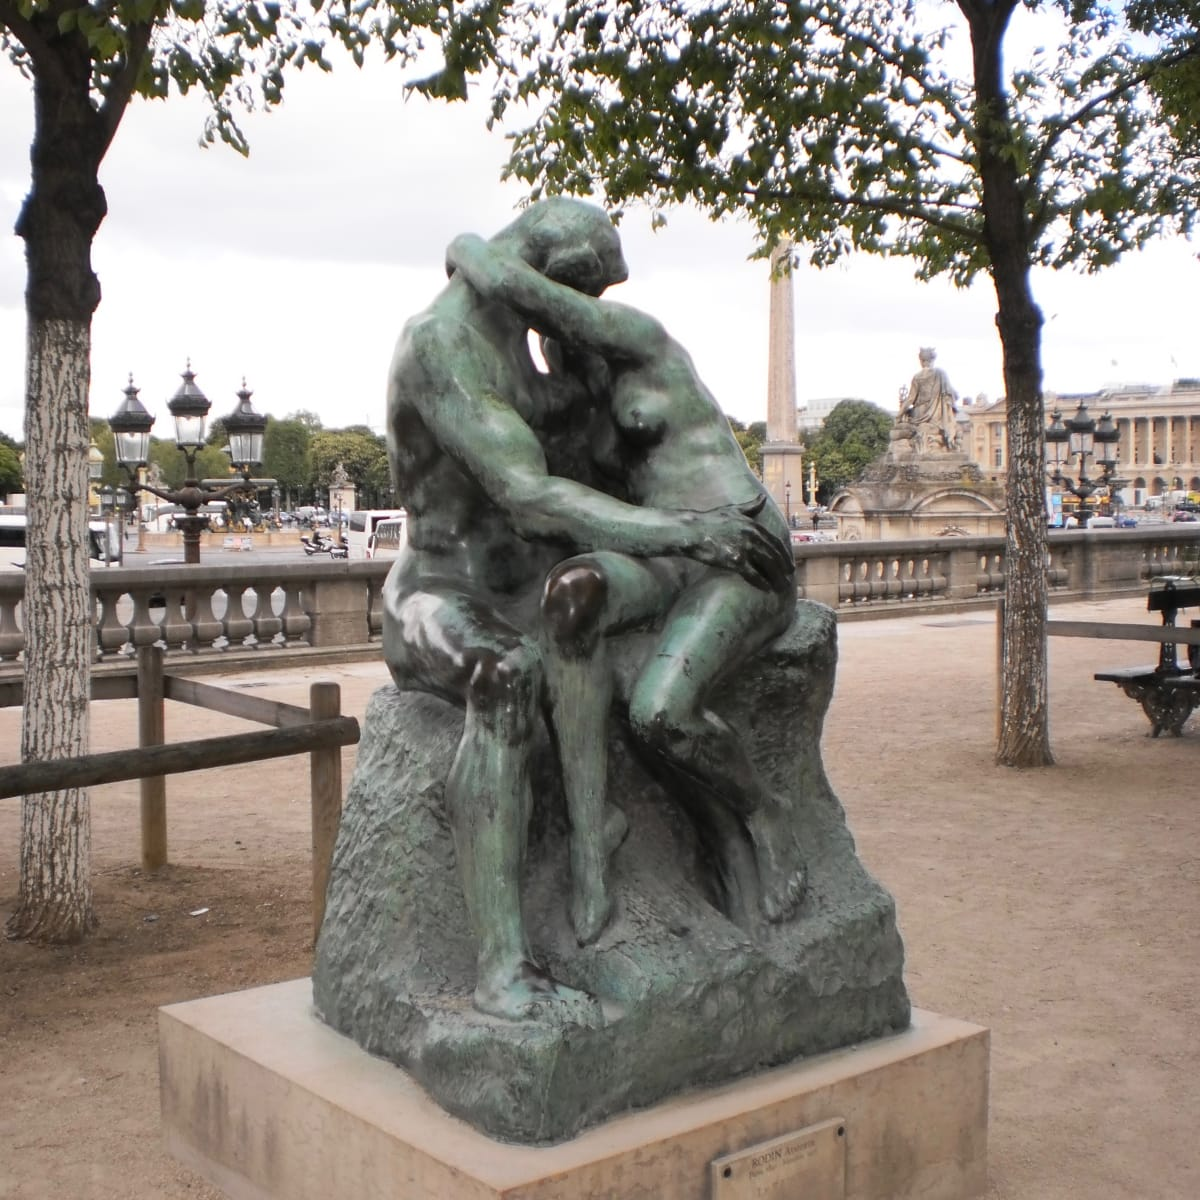 """The lovers in Rodin's """"The Kiss"""" sculpture outside Musee de l'Orangerie in Paris"""